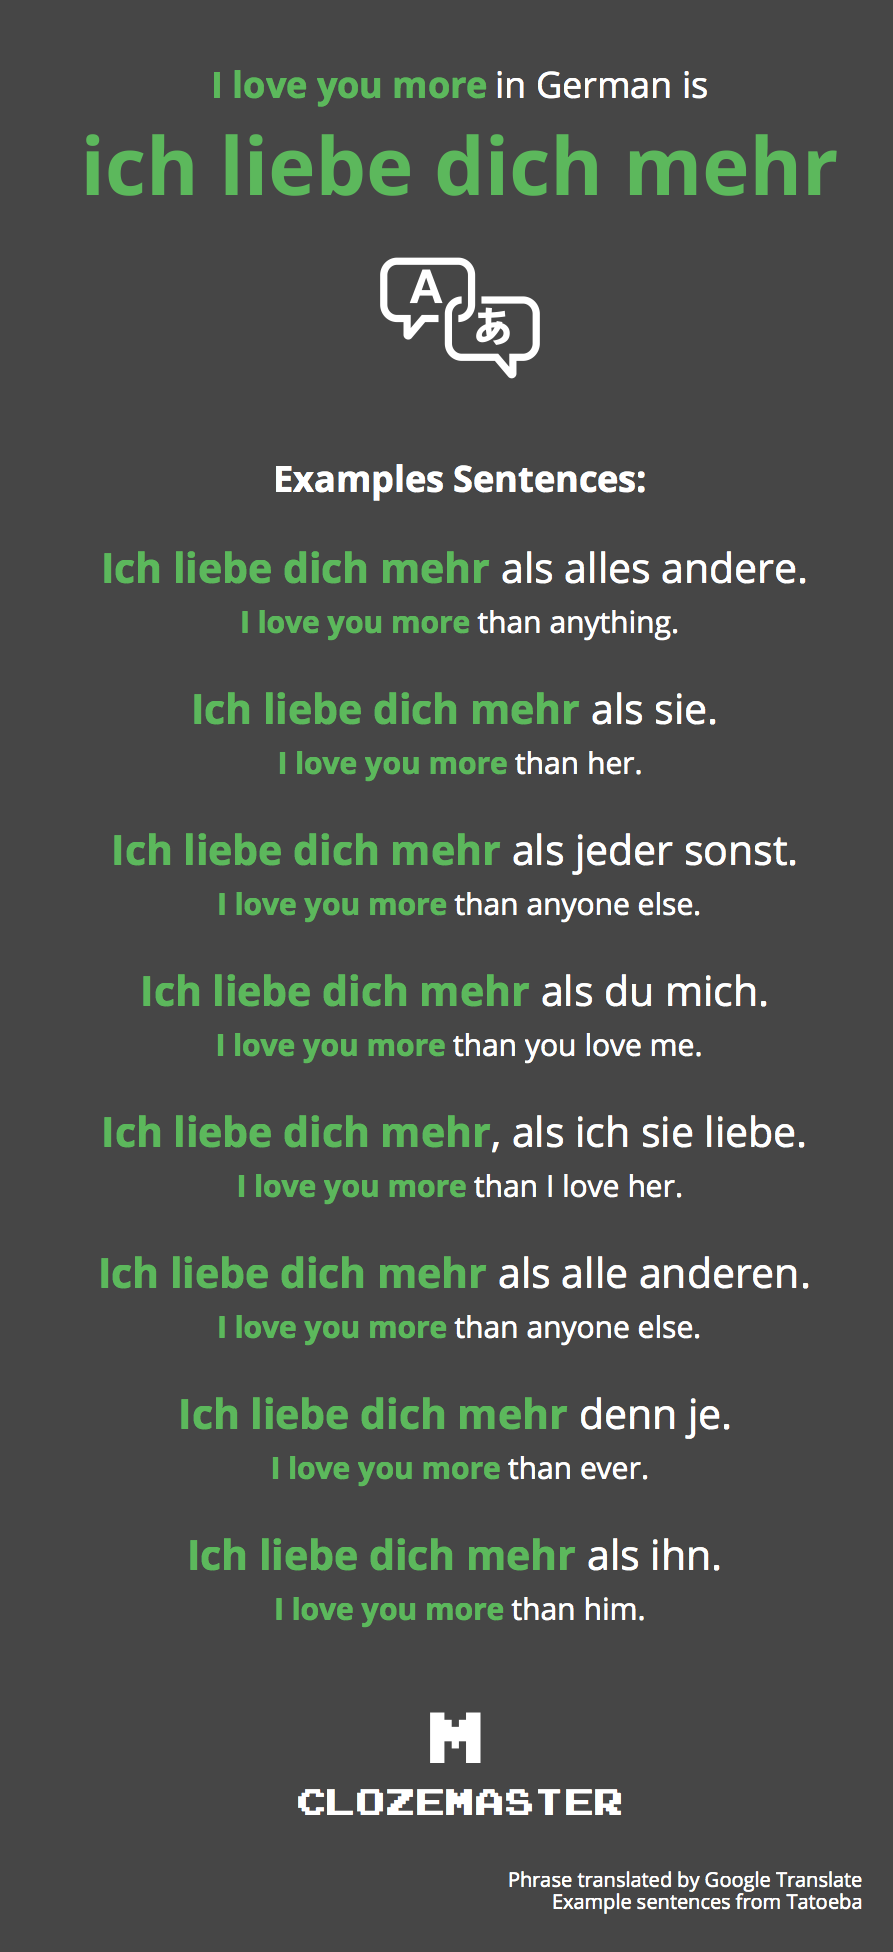 How to Say I love you more in German - Clozemaster